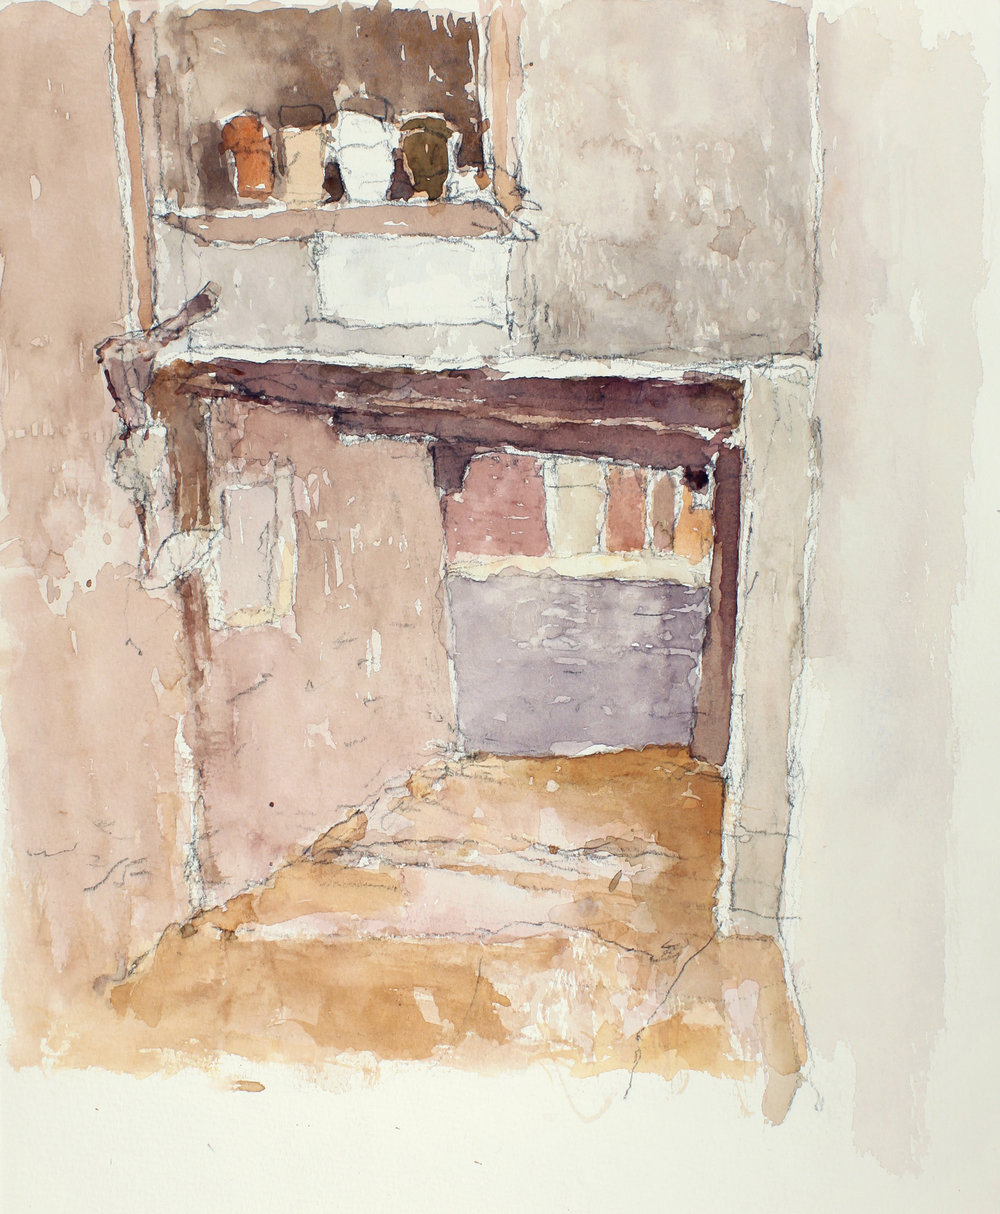 2003_Sottoportego_Mosto_watercolour_and_pencil_on_paper_14x11in_WPF322.jpg